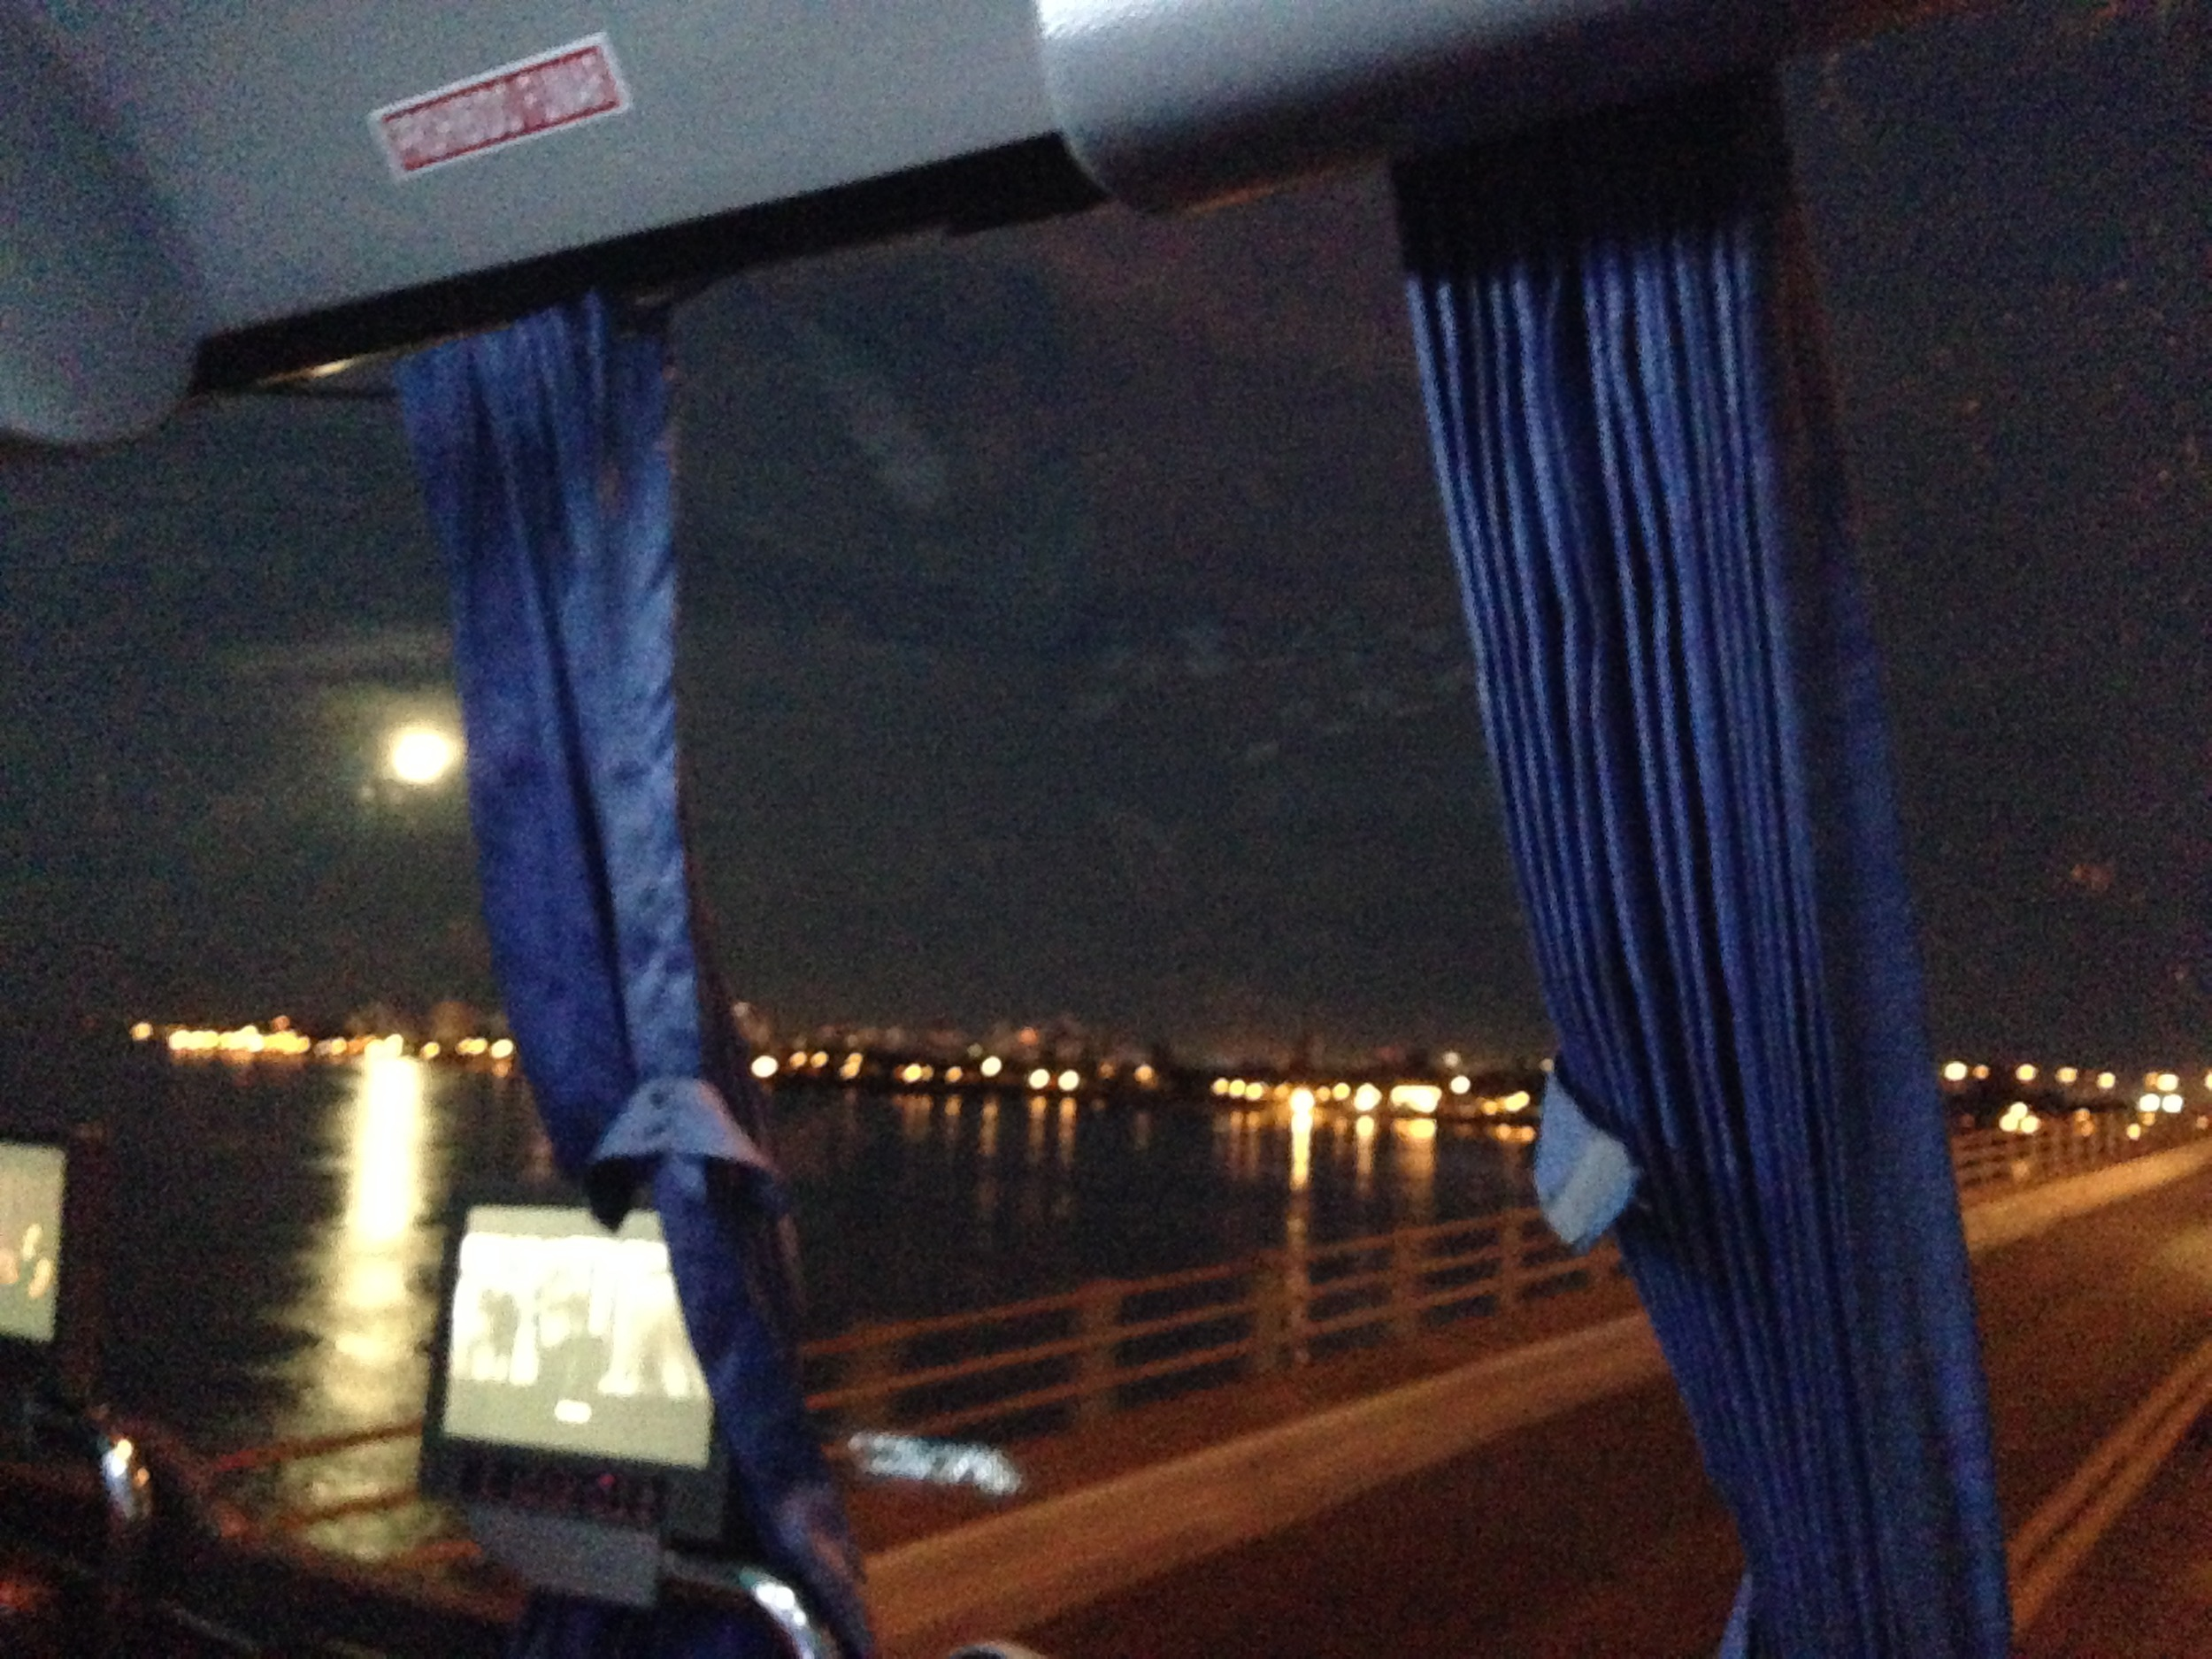 The view from my luxe overnight bus from Resistencia to Buenos Aires. Empanadas, wine, and moon included.